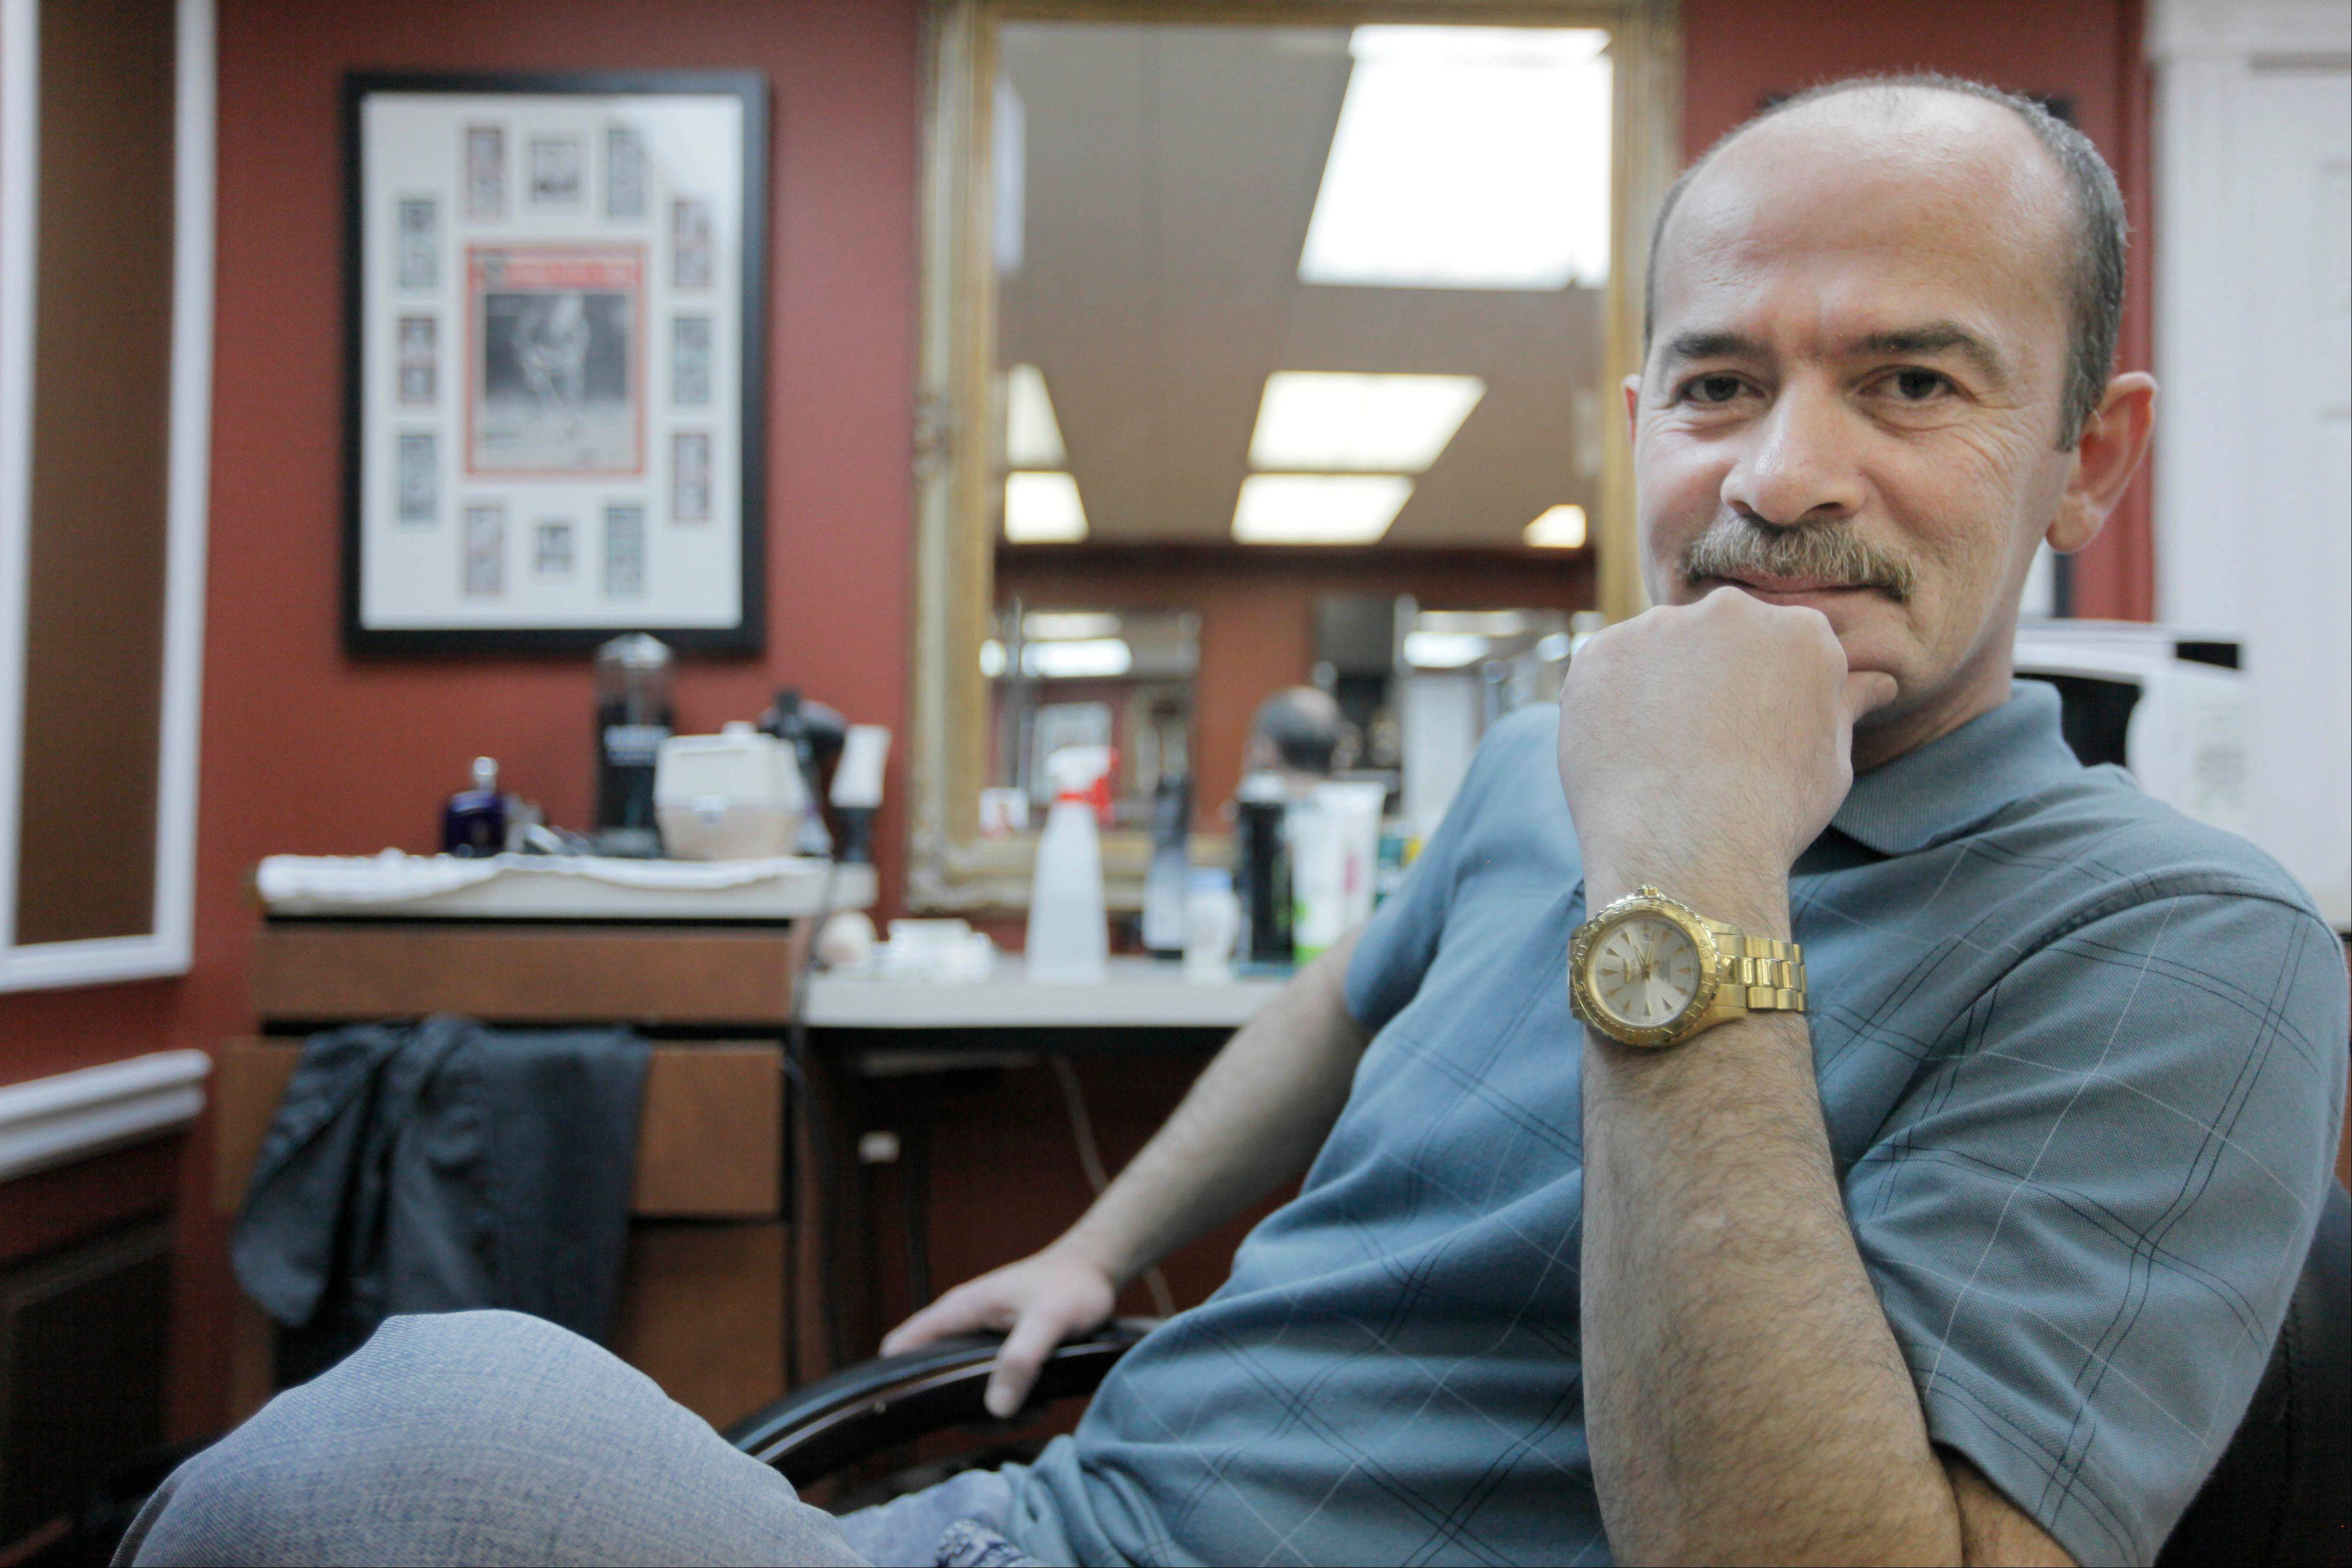 Chicago barber Peter Vodovoz cared for former Gov. Rod Blagojevich's coif for more than 20 years.